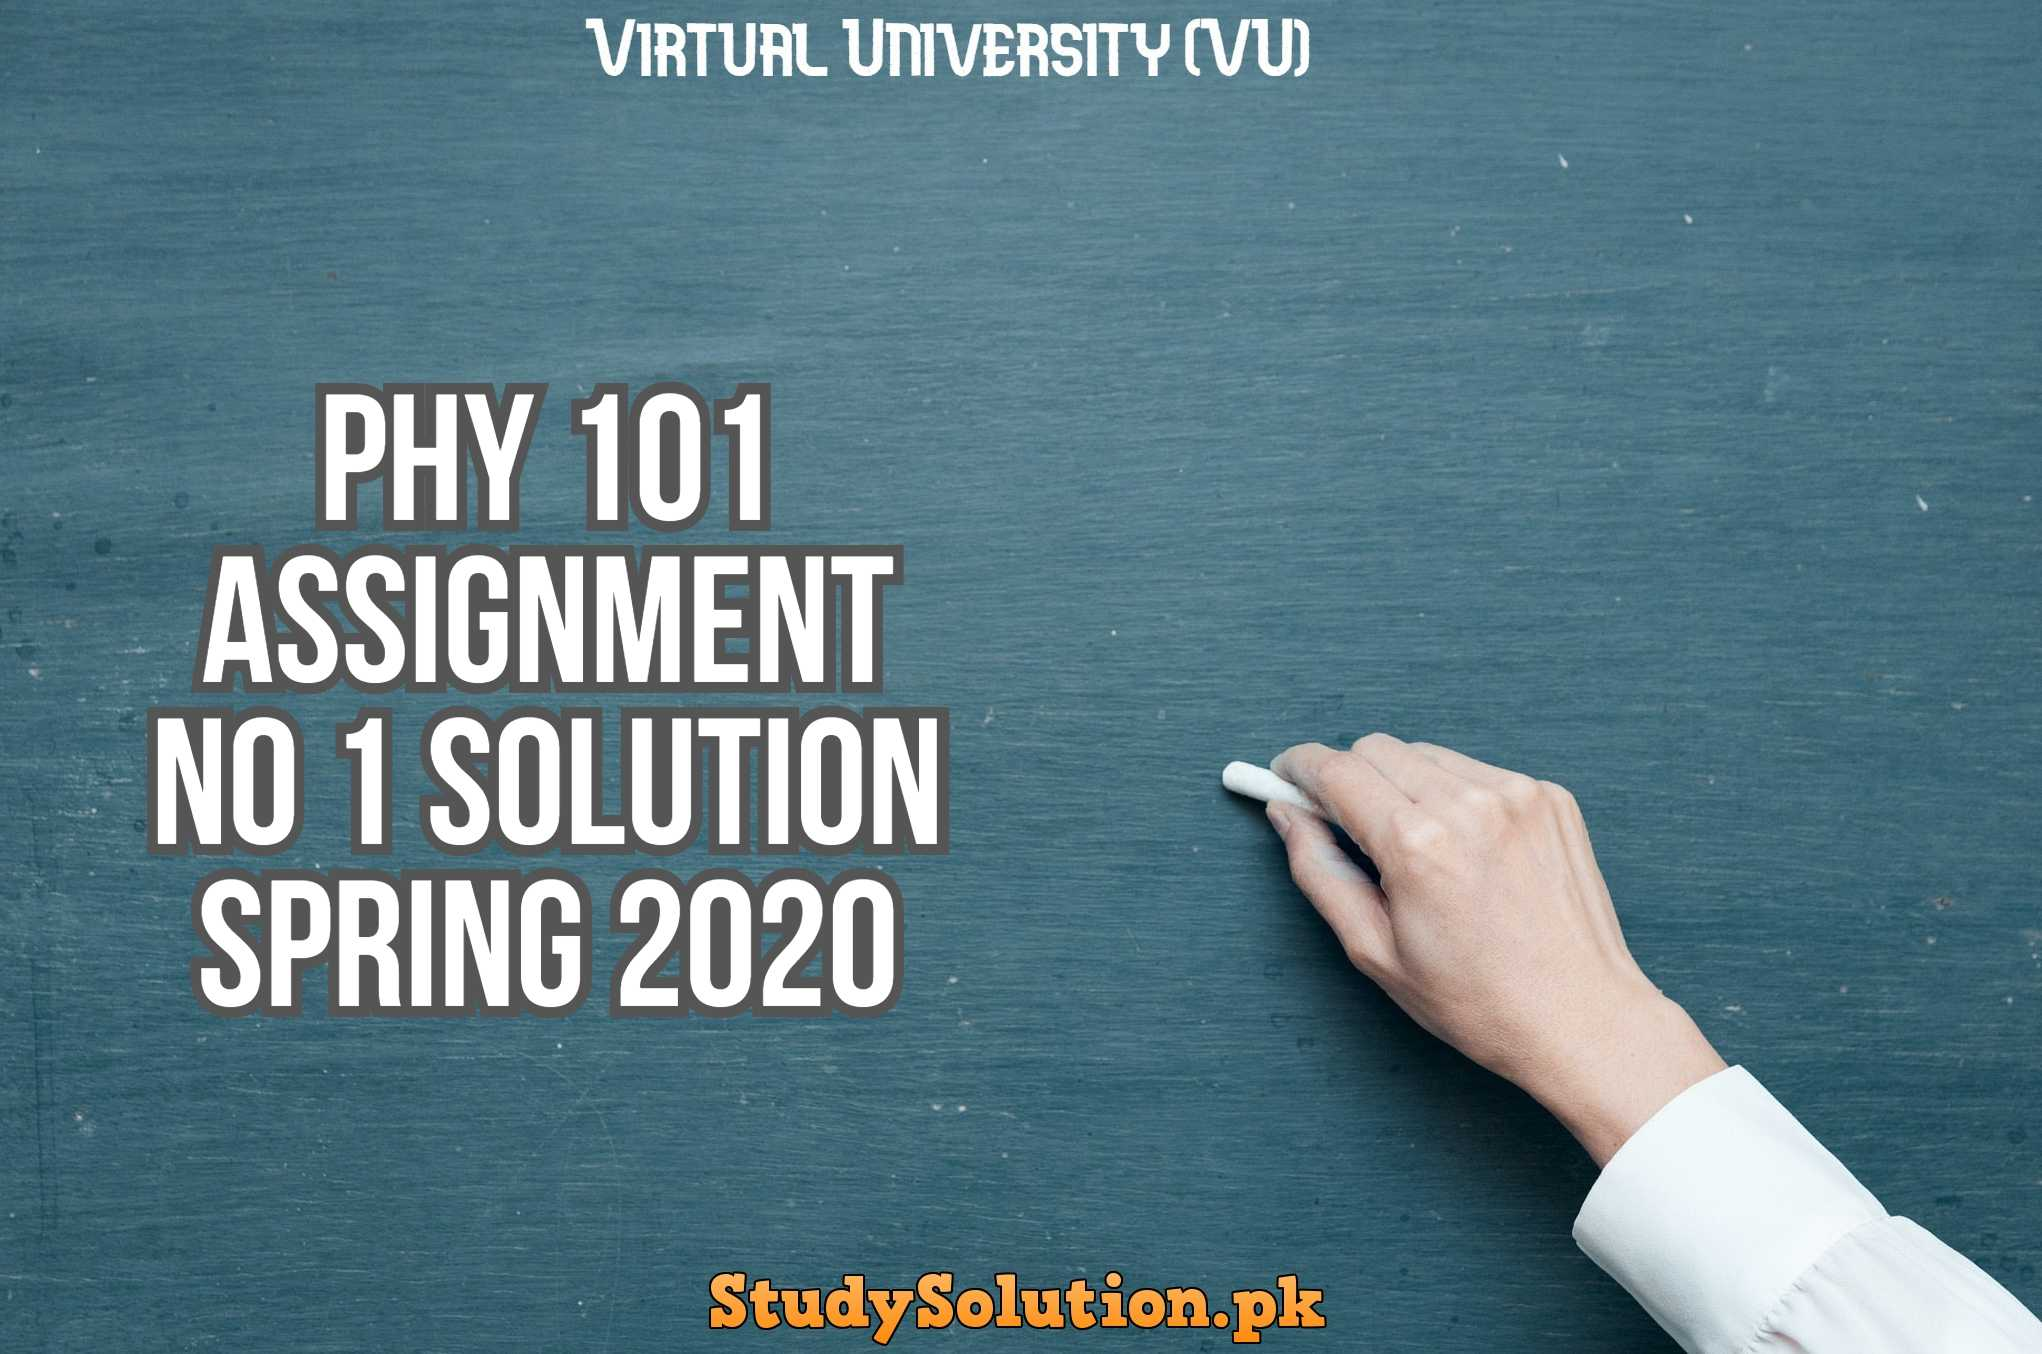 PHY 101 Assignment No 1 Solution Spring 2020